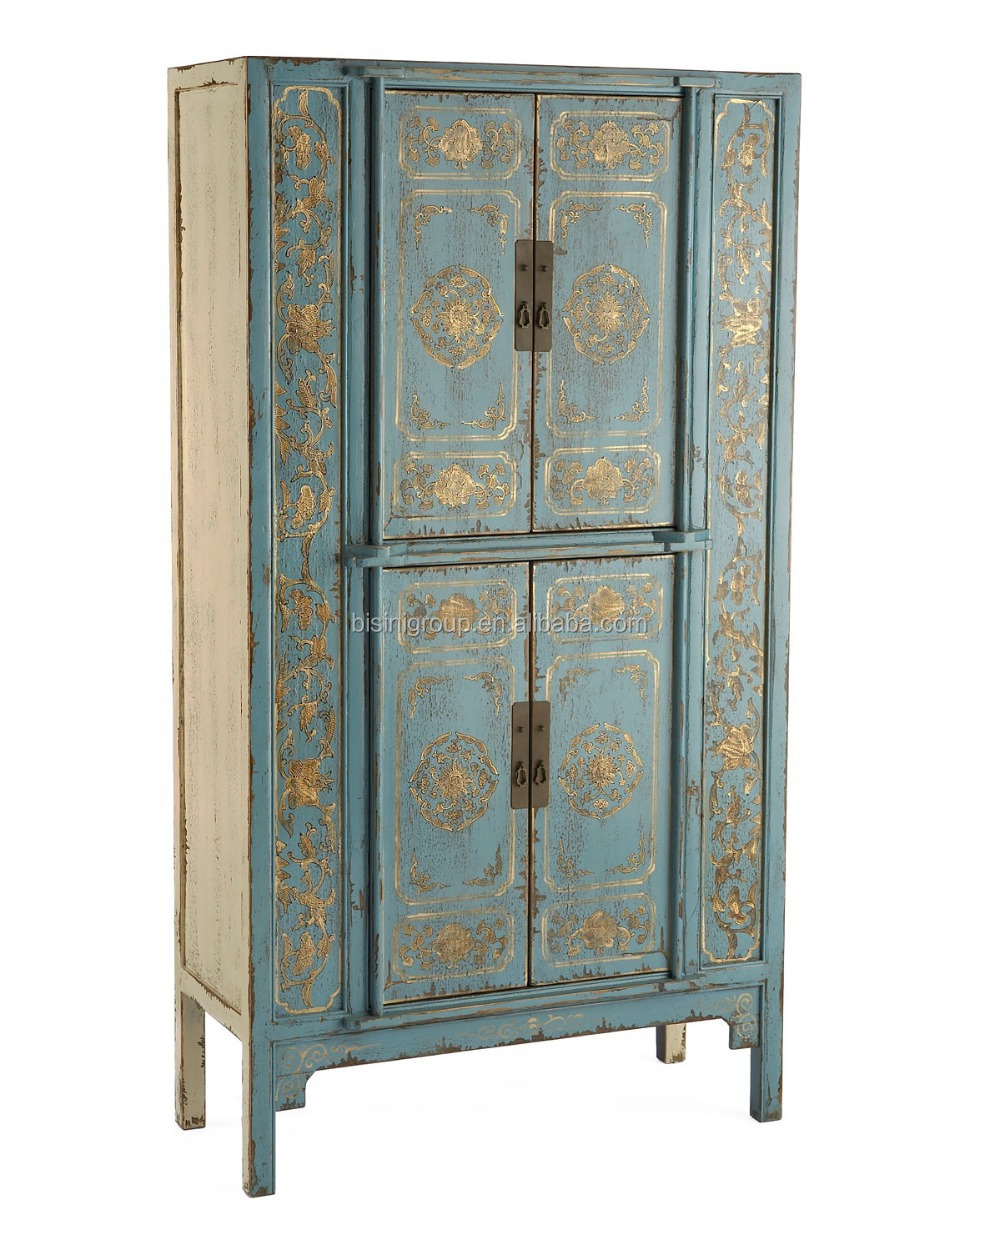 antique original fran ais shabby chic armoire style. Black Bedroom Furniture Sets. Home Design Ideas